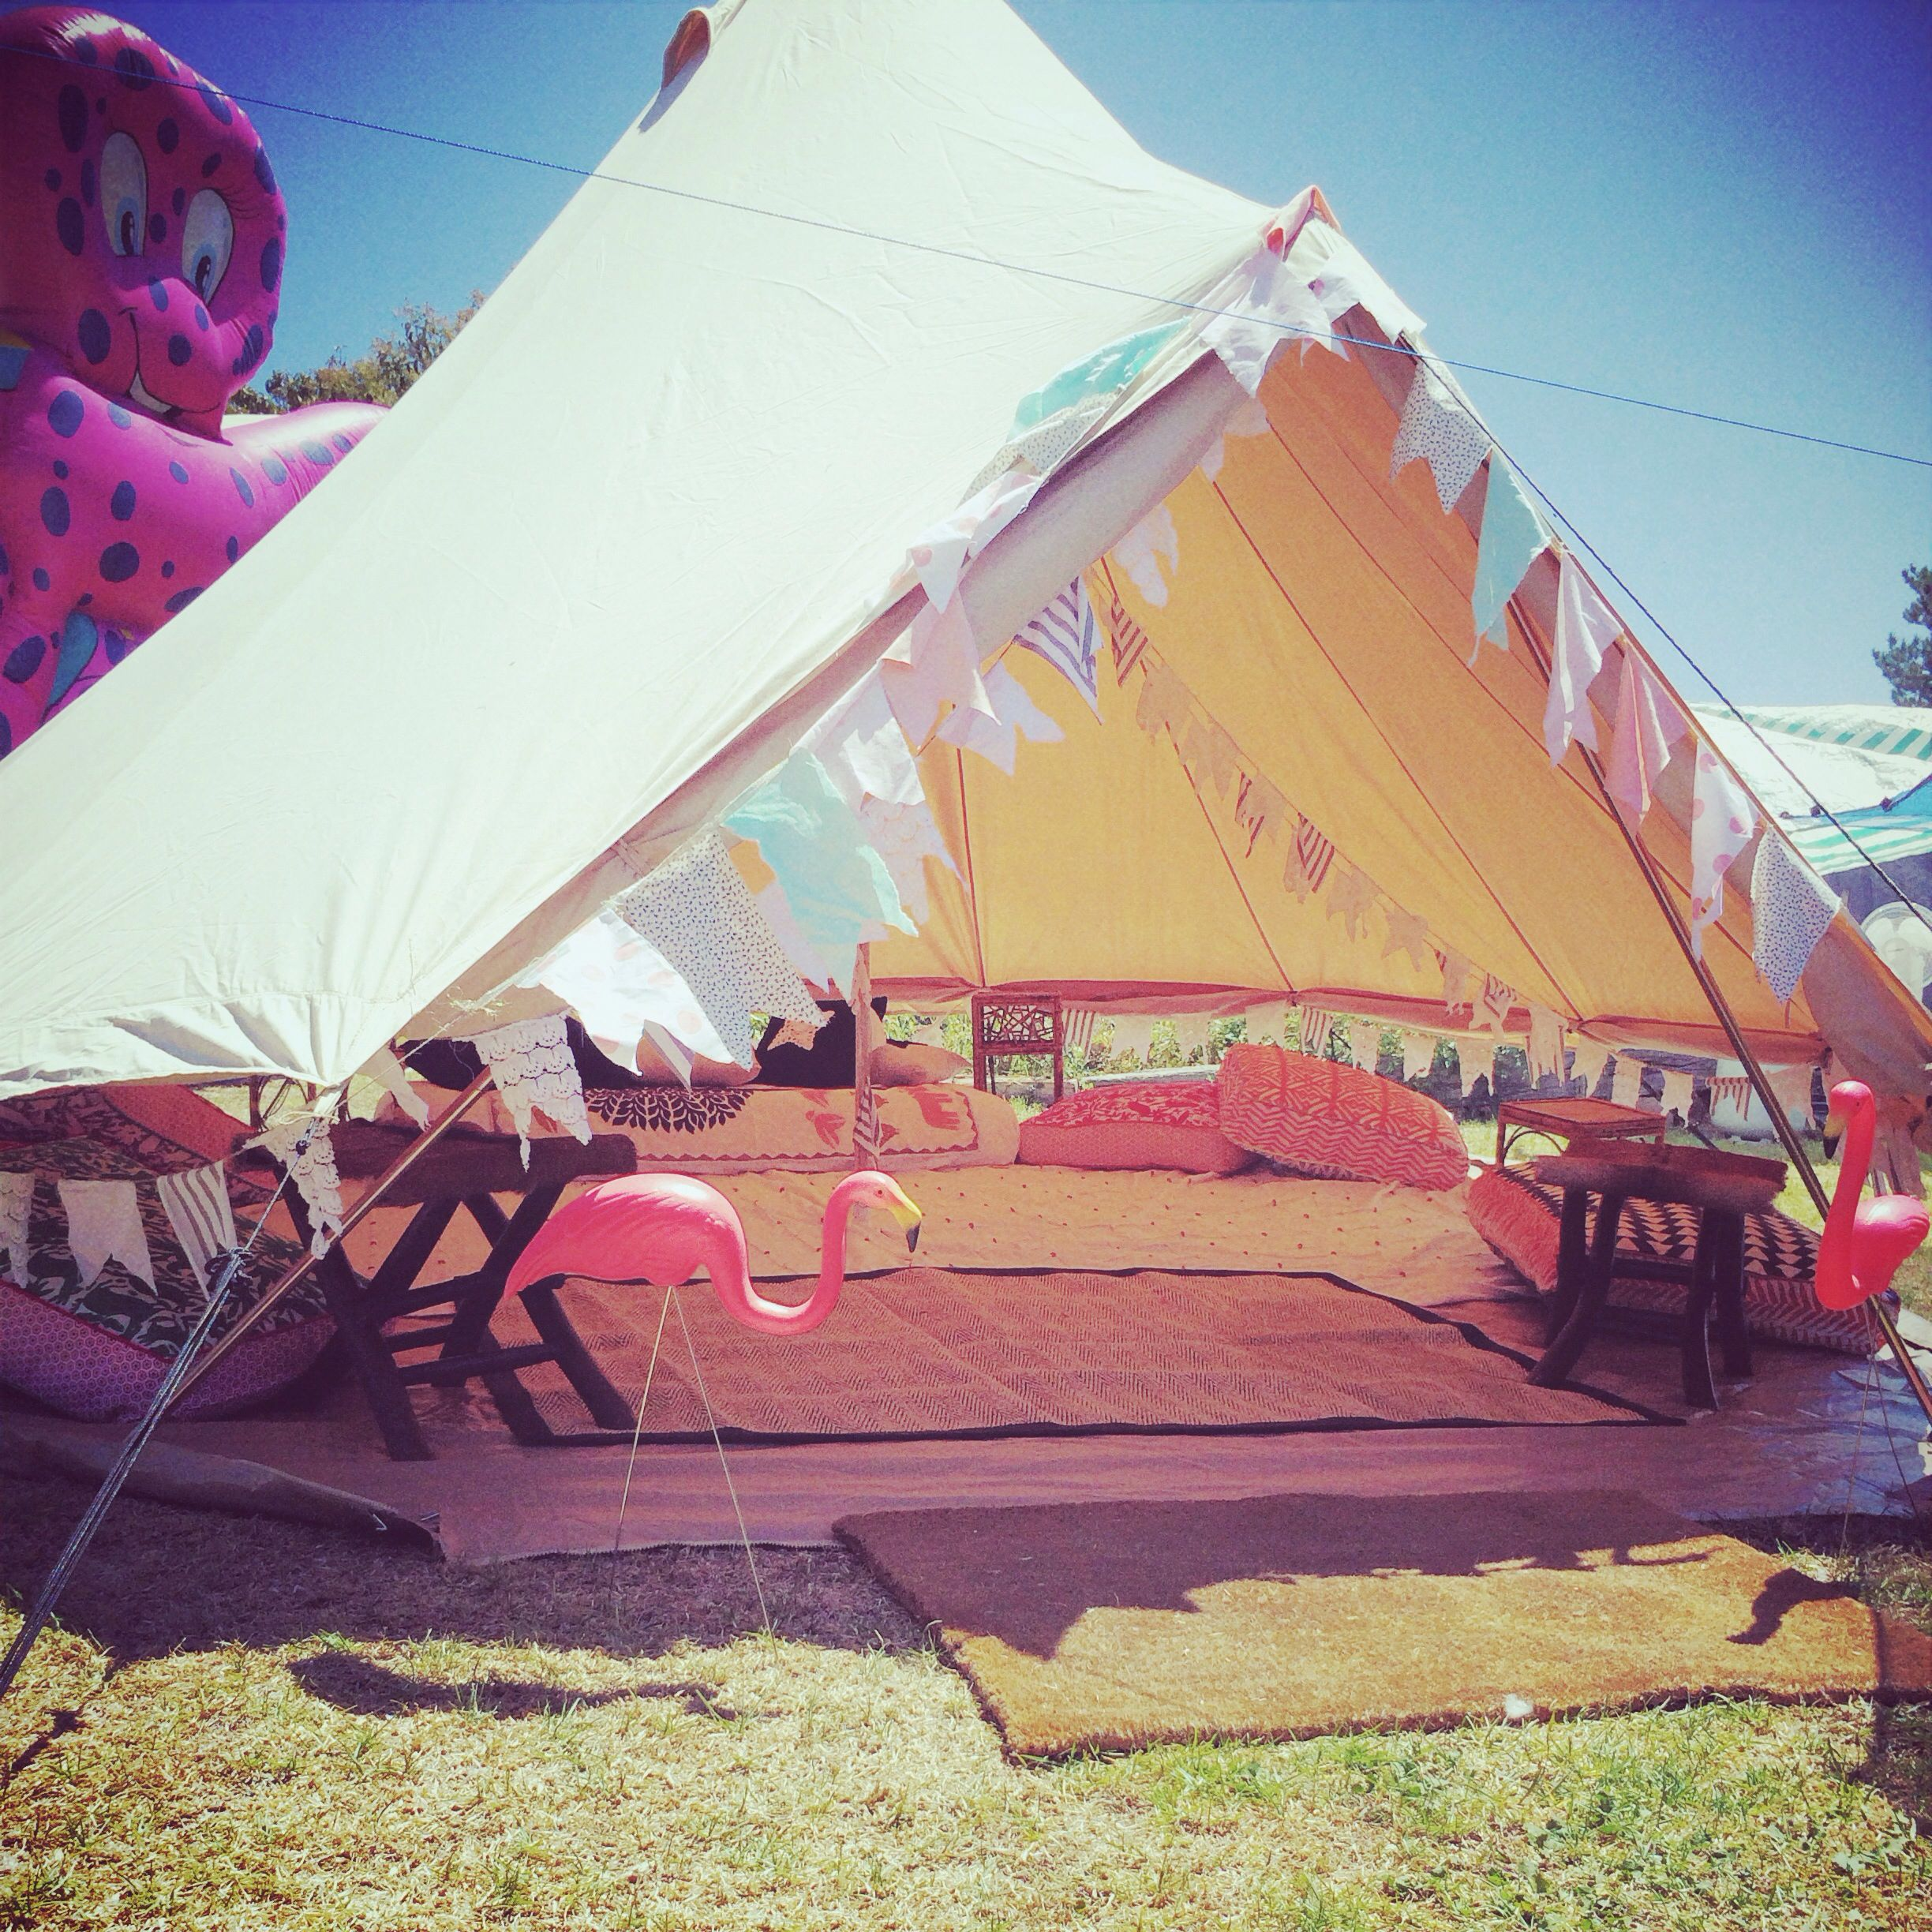 Bell Tent Decor Kids Play Bell Tent The Avantgarde Camping Company  Indian